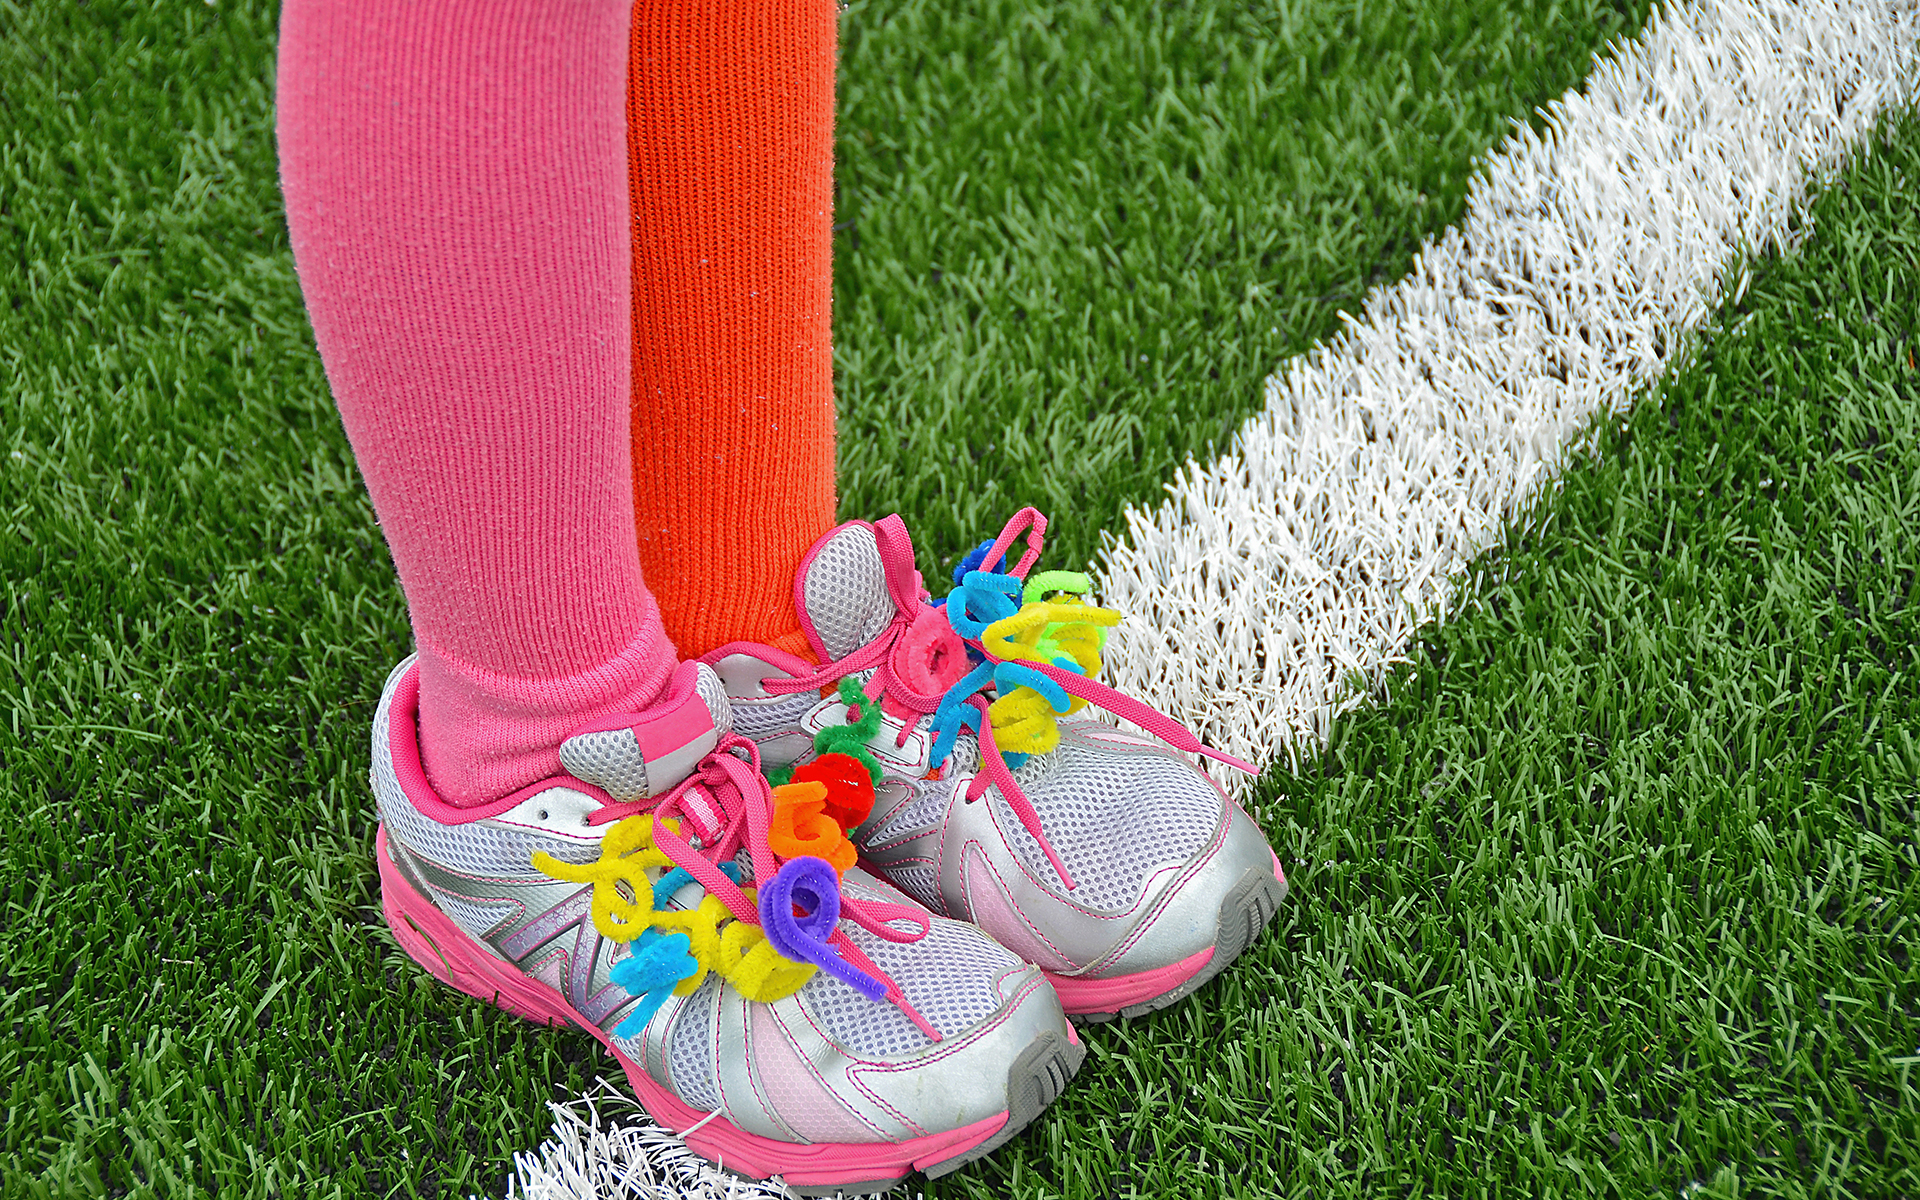 Mindful Parenting: 5 Tools to Set Healthy Limits for Your Child - pipe cleaners on sports shoe